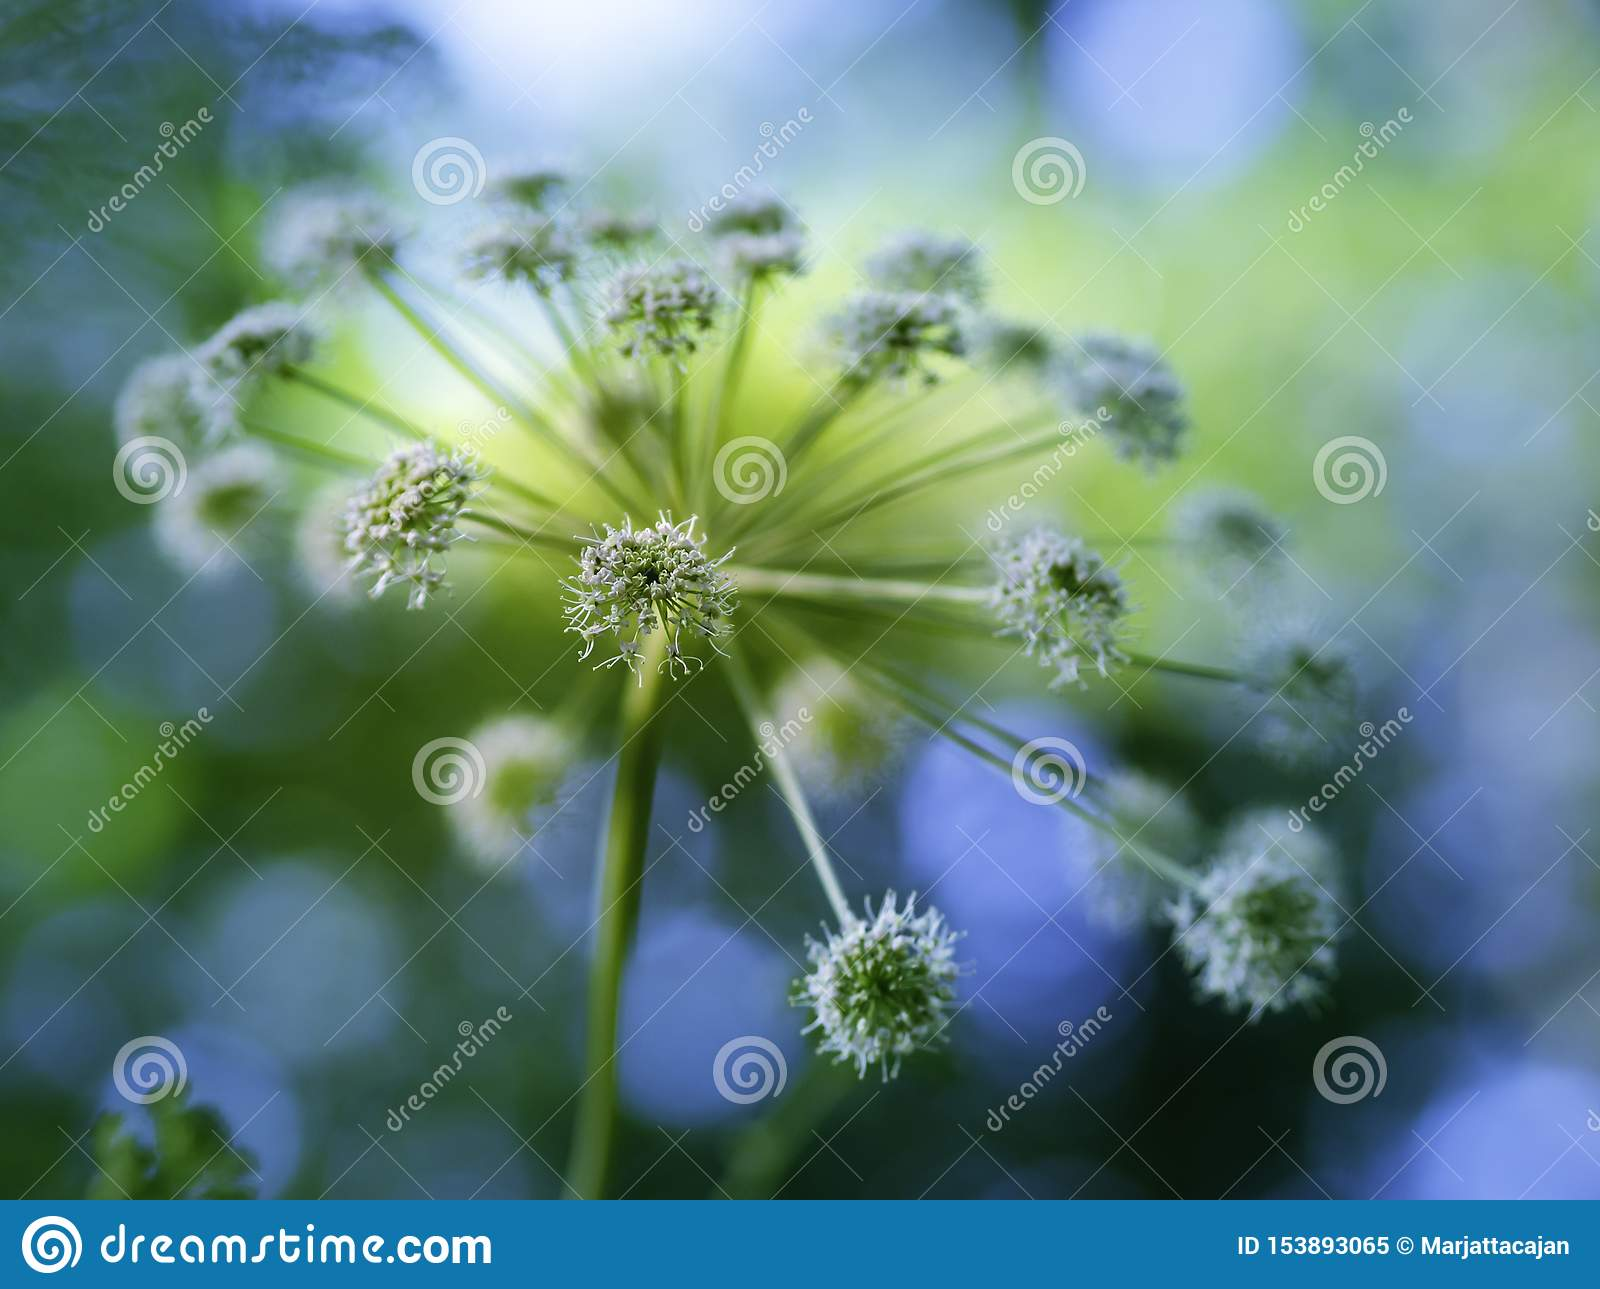 Majestic flower of angelica blooming